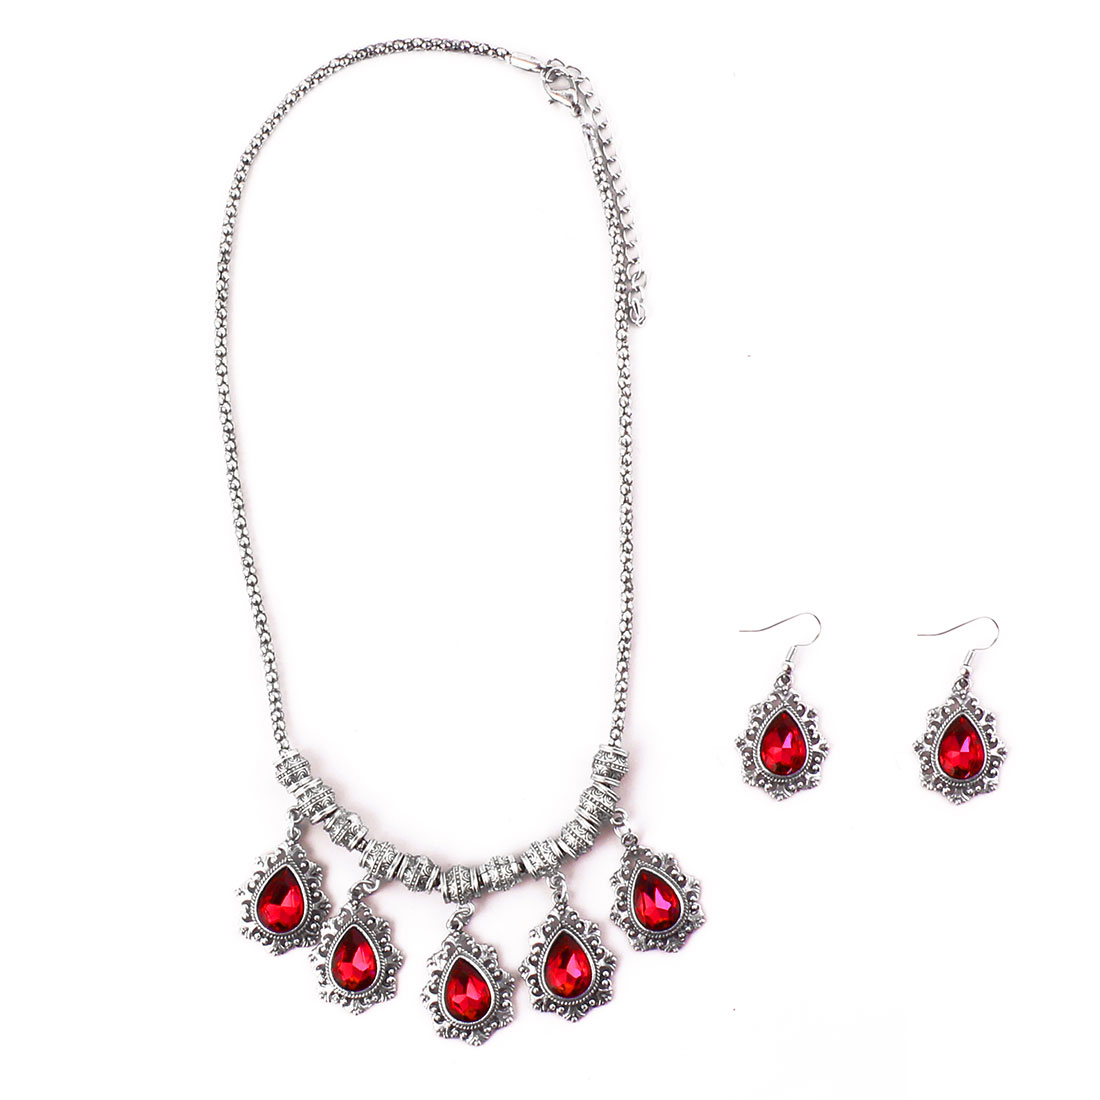 Women Metal Retro Style Pendant Bib Collar Charming Choker Necklace Earrings Red Set